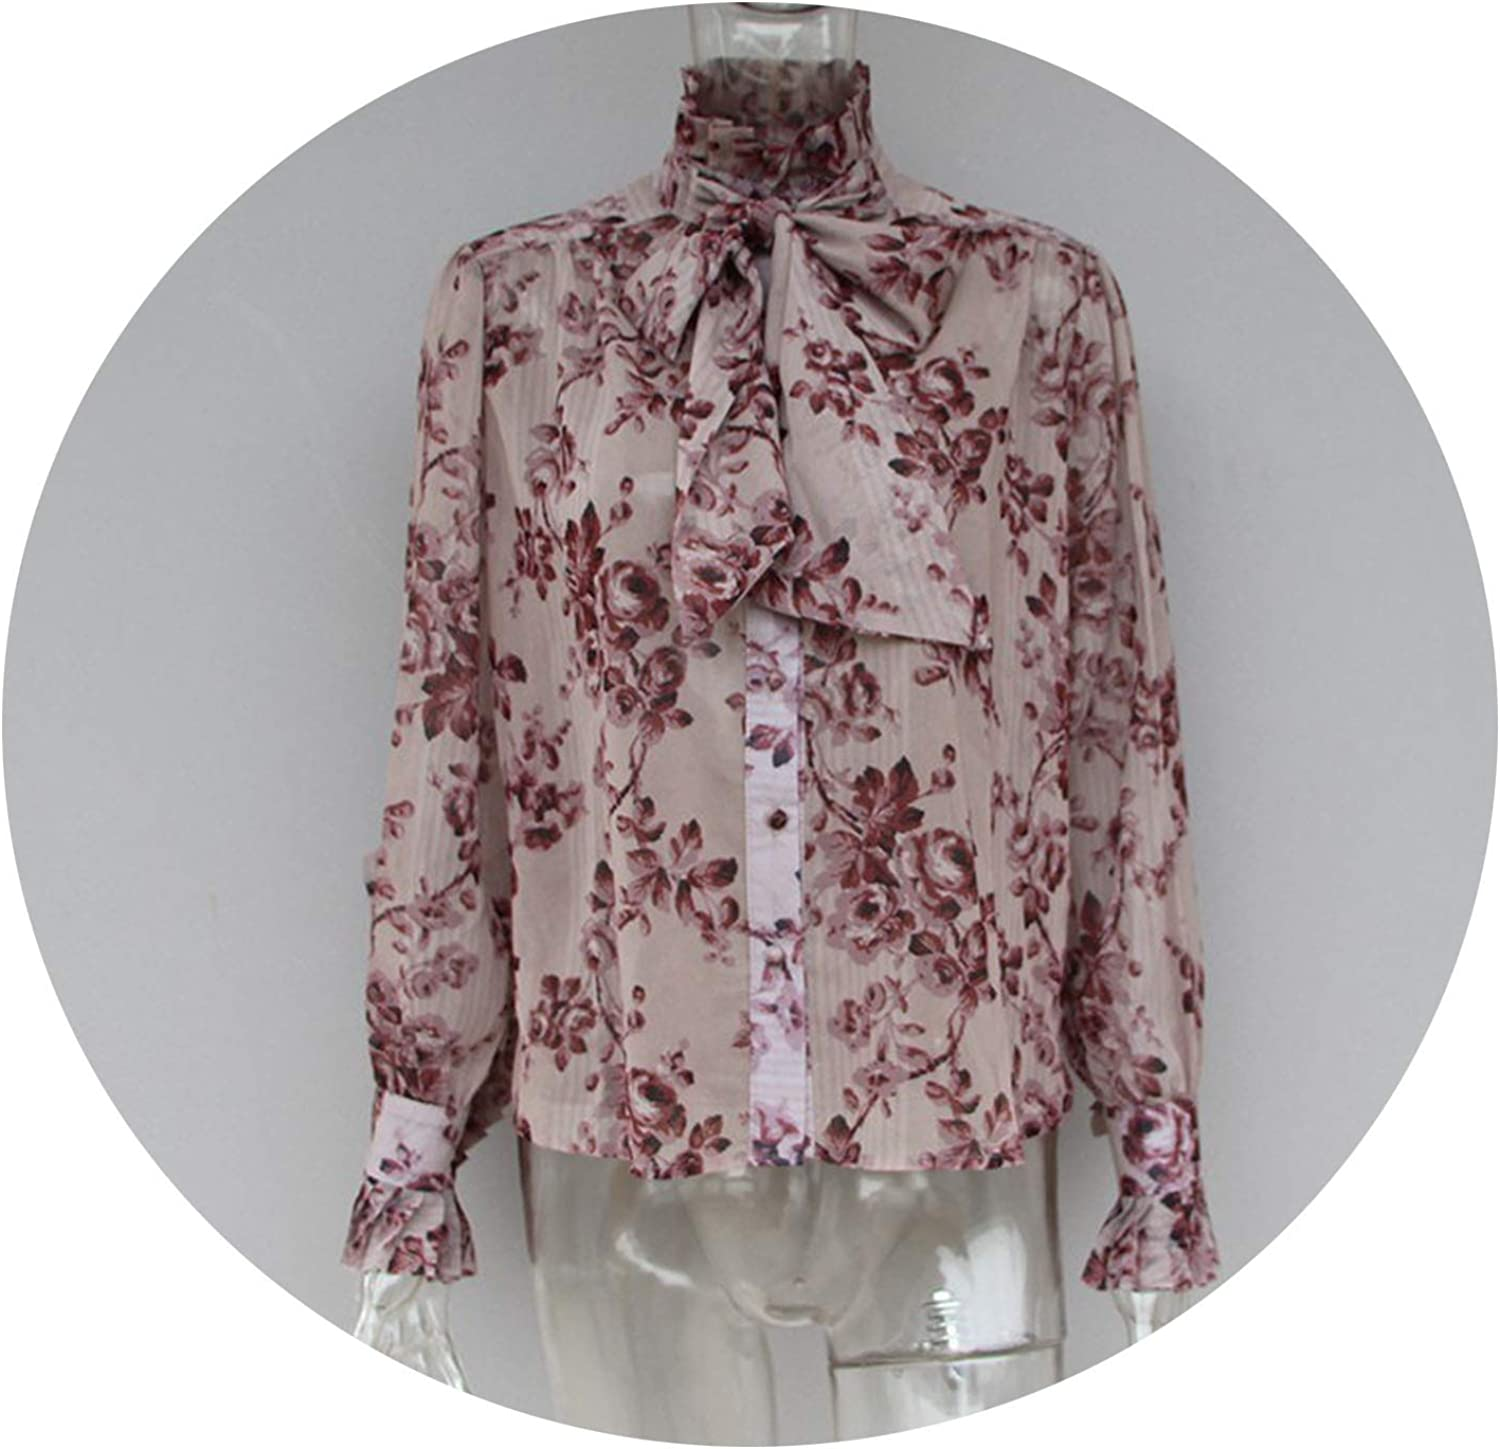 Crack of dawn Casual Print Tops Female Bowknot Lace Up Turtleneck Lantern Long Sleeve Shirts Blouse Women 2019 Spring